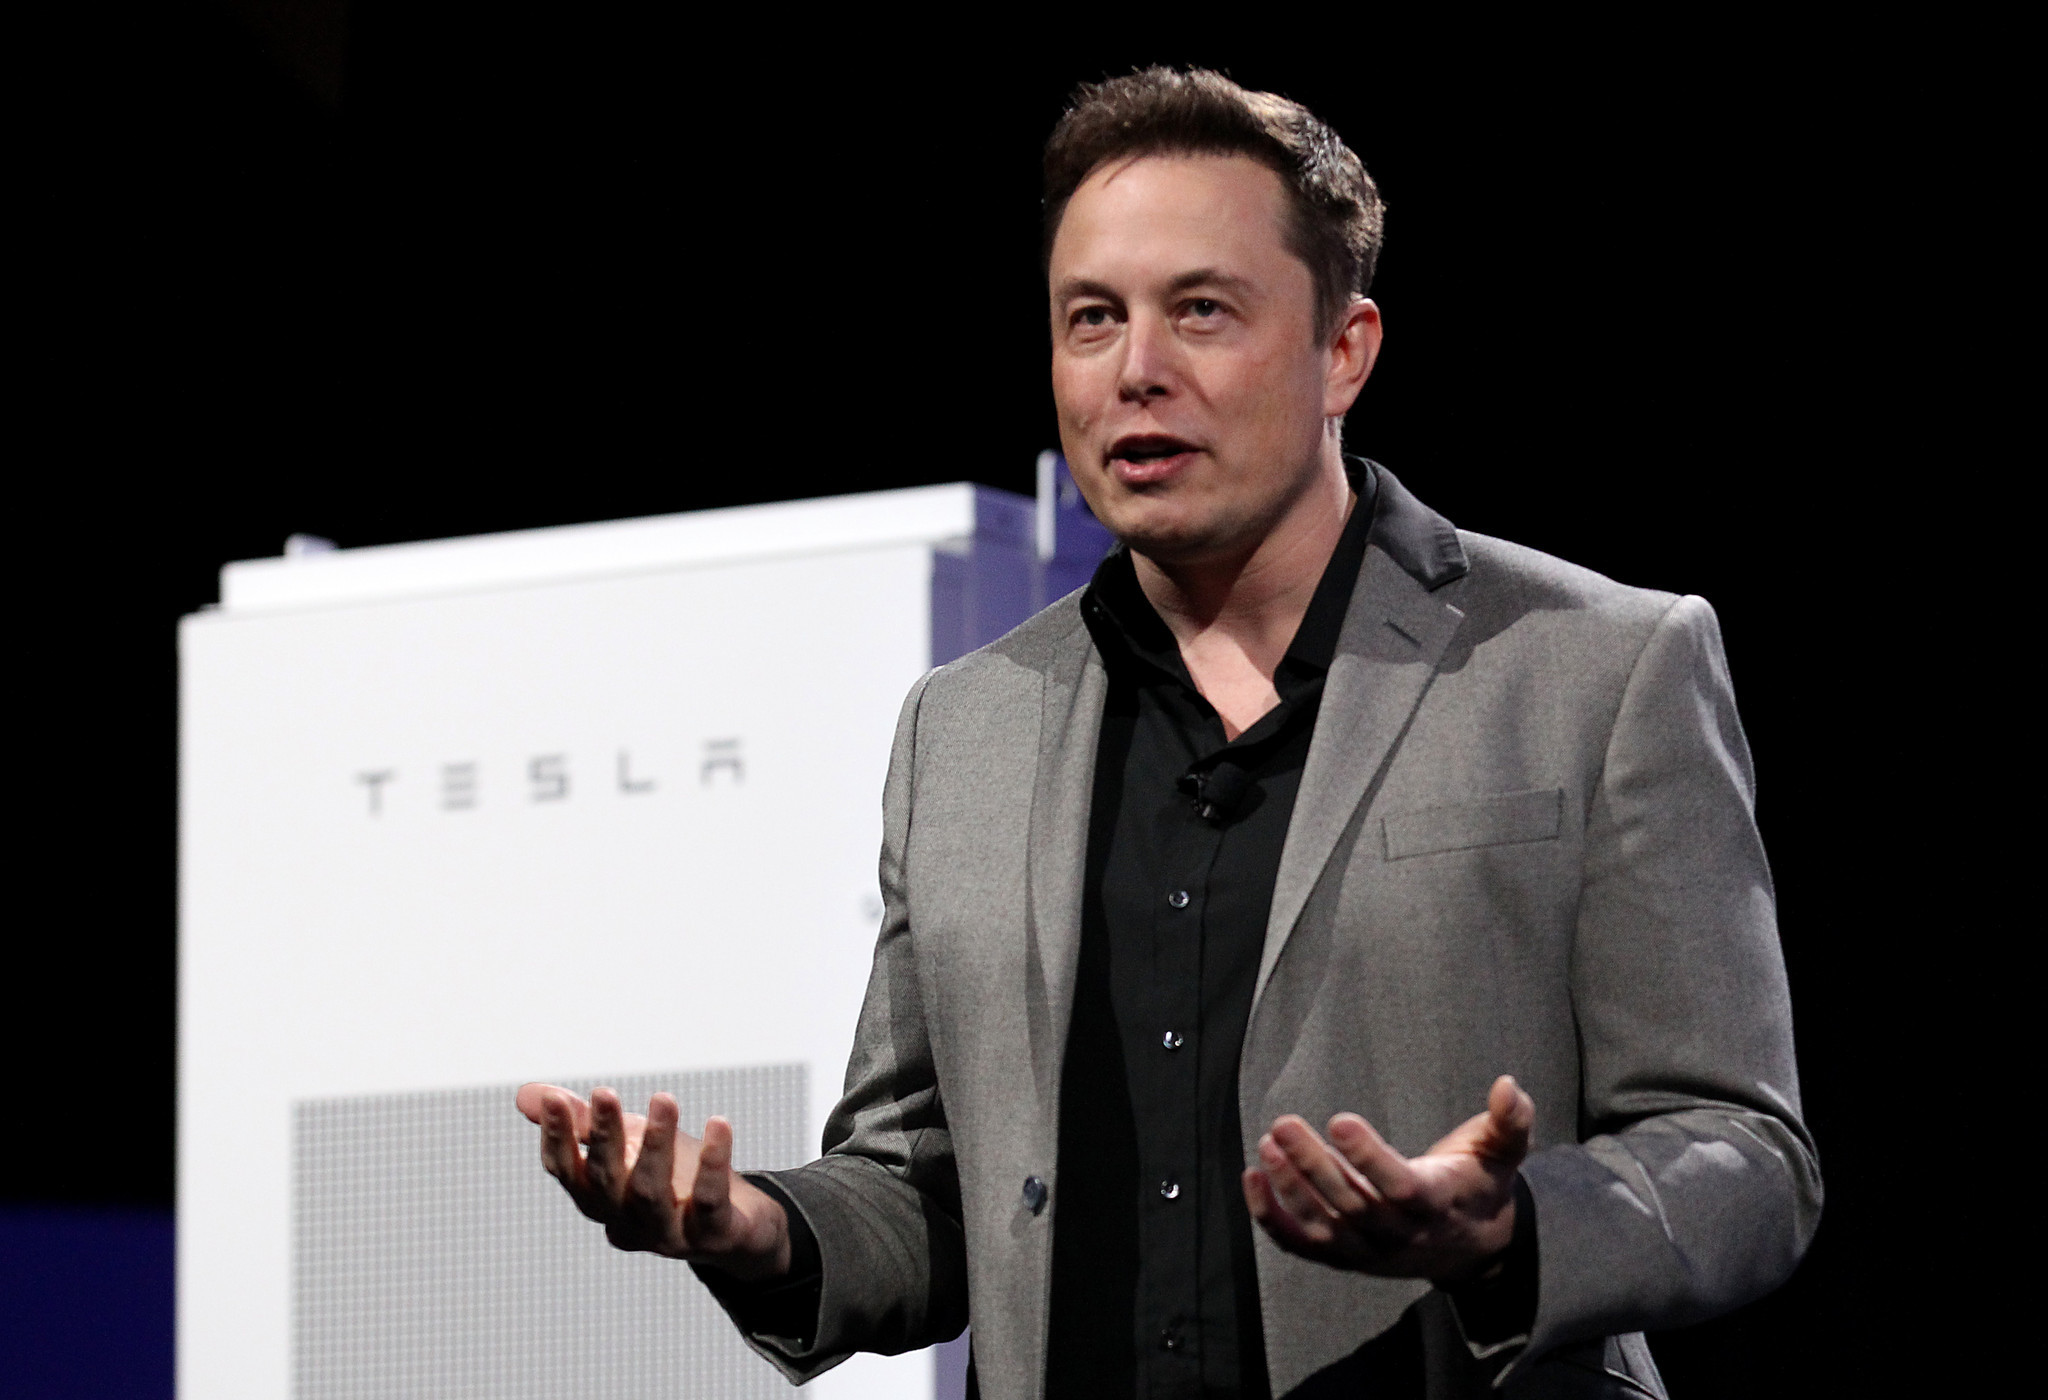 Tesla motors ceo elon musk battery to power home is only 6 - Tesla Expands From Electric Cars To Energy Storage For Businesses Homes Techno Stream